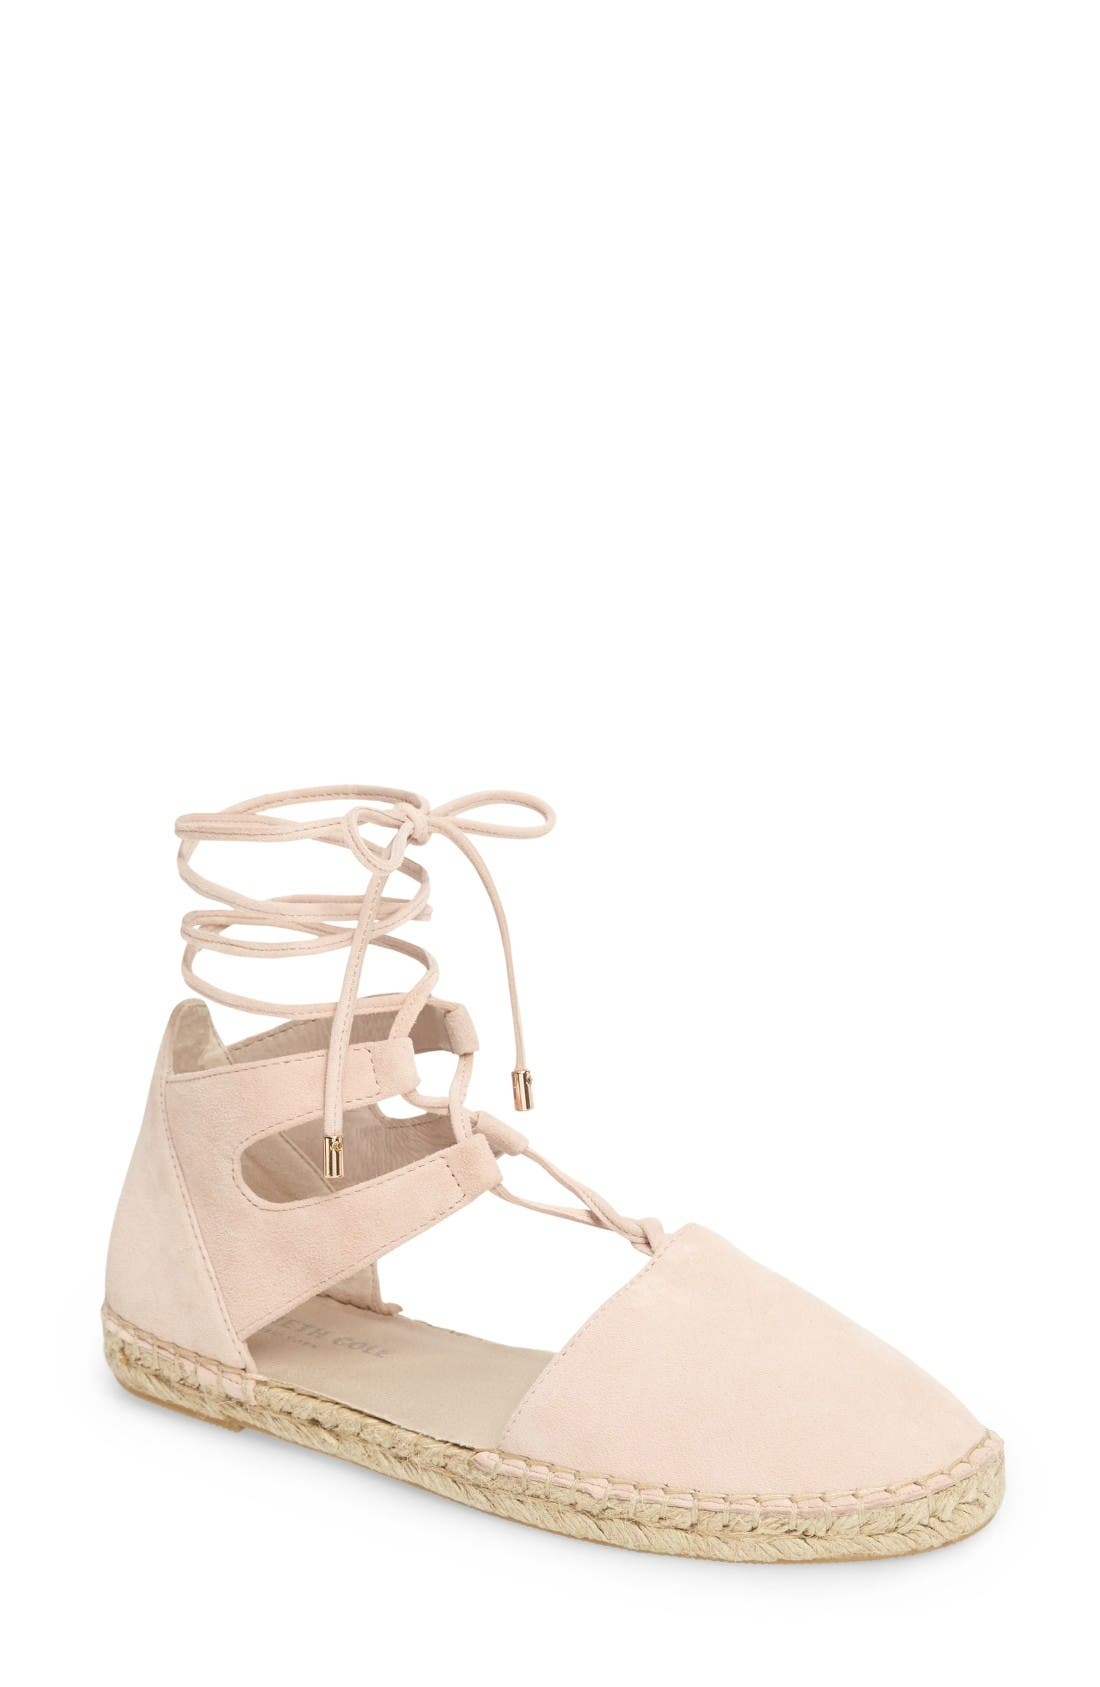 Main Image - Kenneth Cole New York Beverly Espadrille Flat (Women)